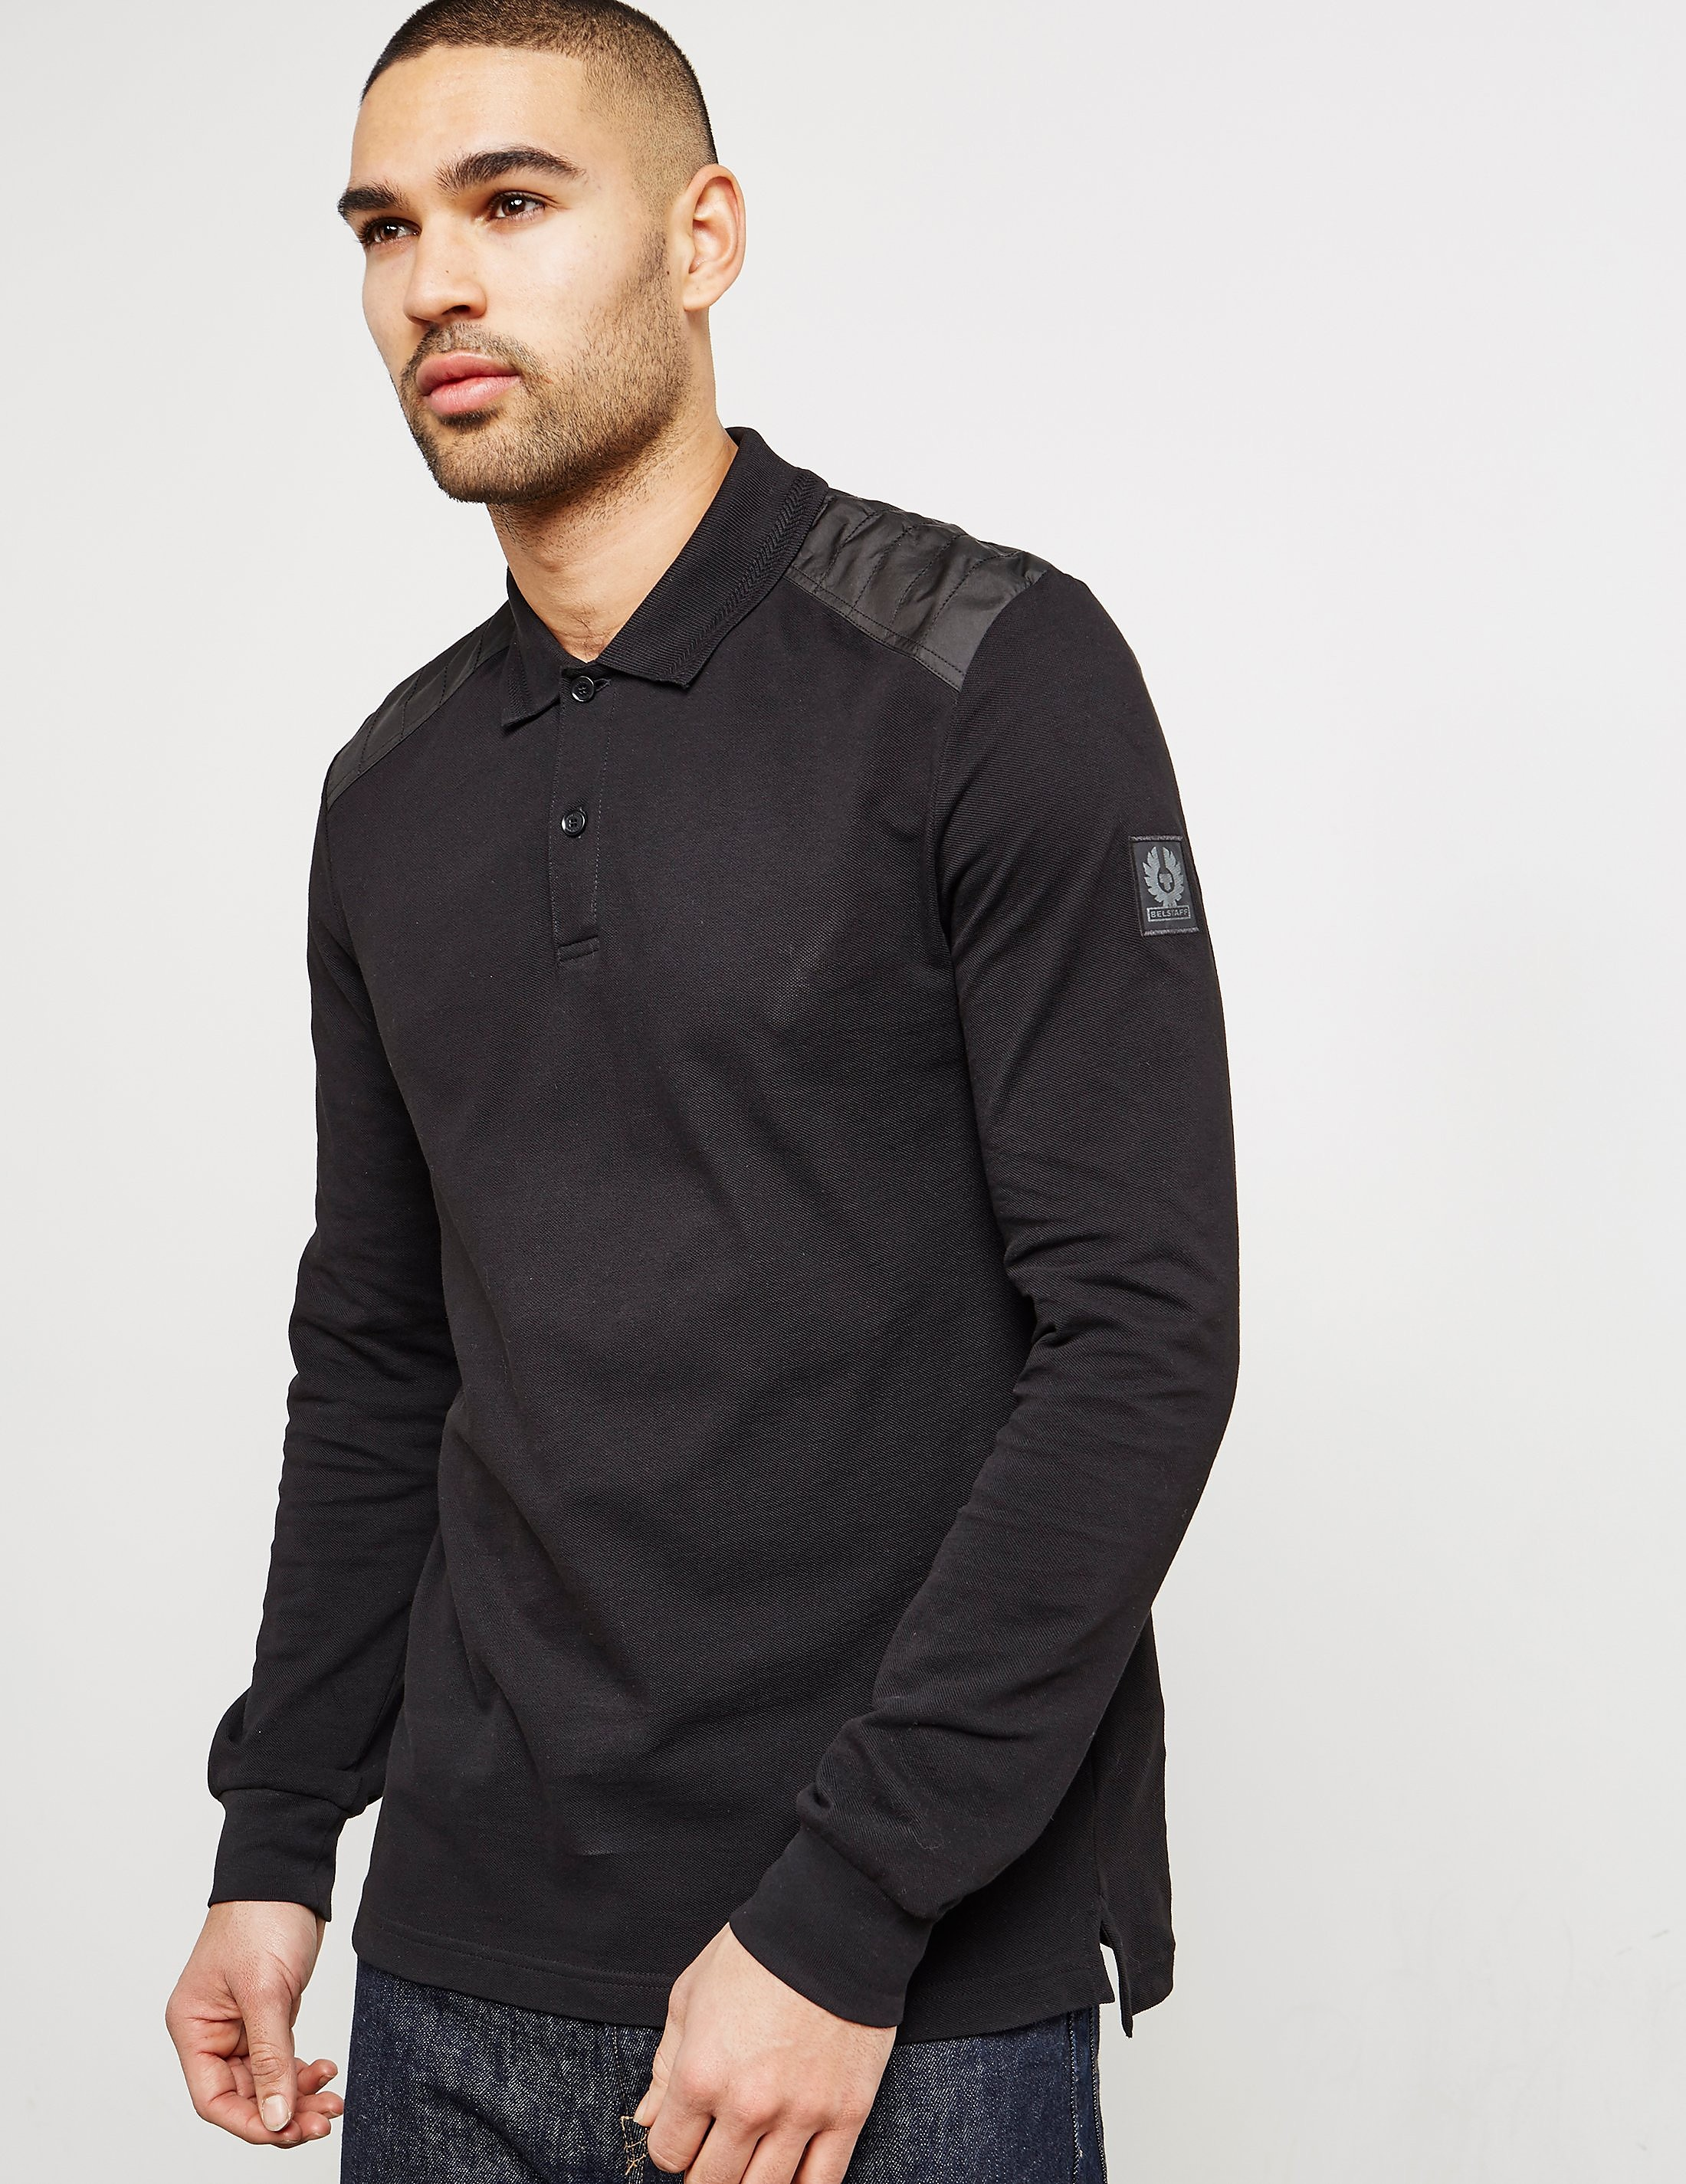 Belstaff Ashburton Long Sleeve Polo Shirt